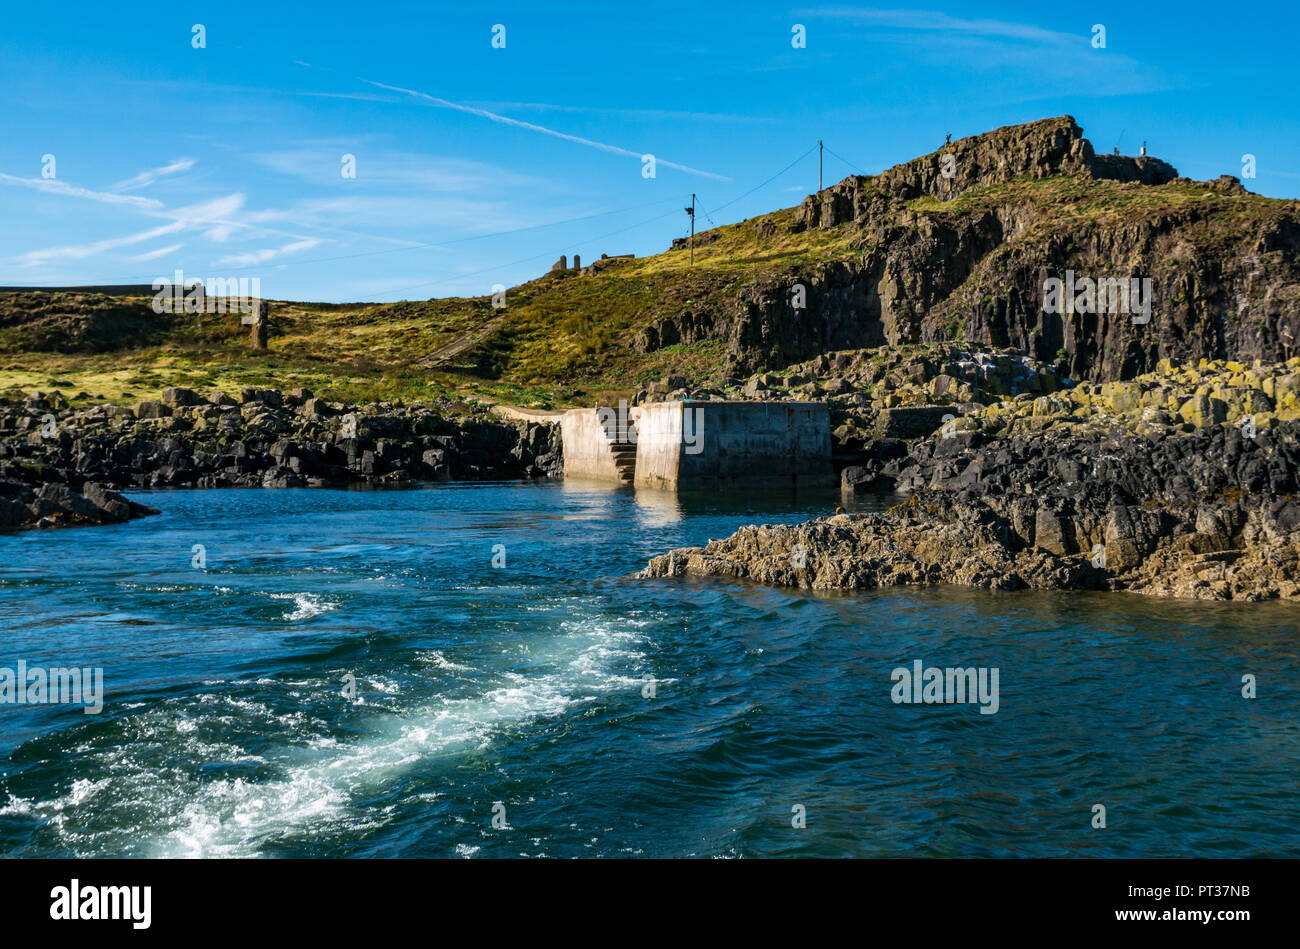 Wake of boat and landing pier, Fidra Island, Firth of Forth, East Lothian, Scotland, UK - Stock Image